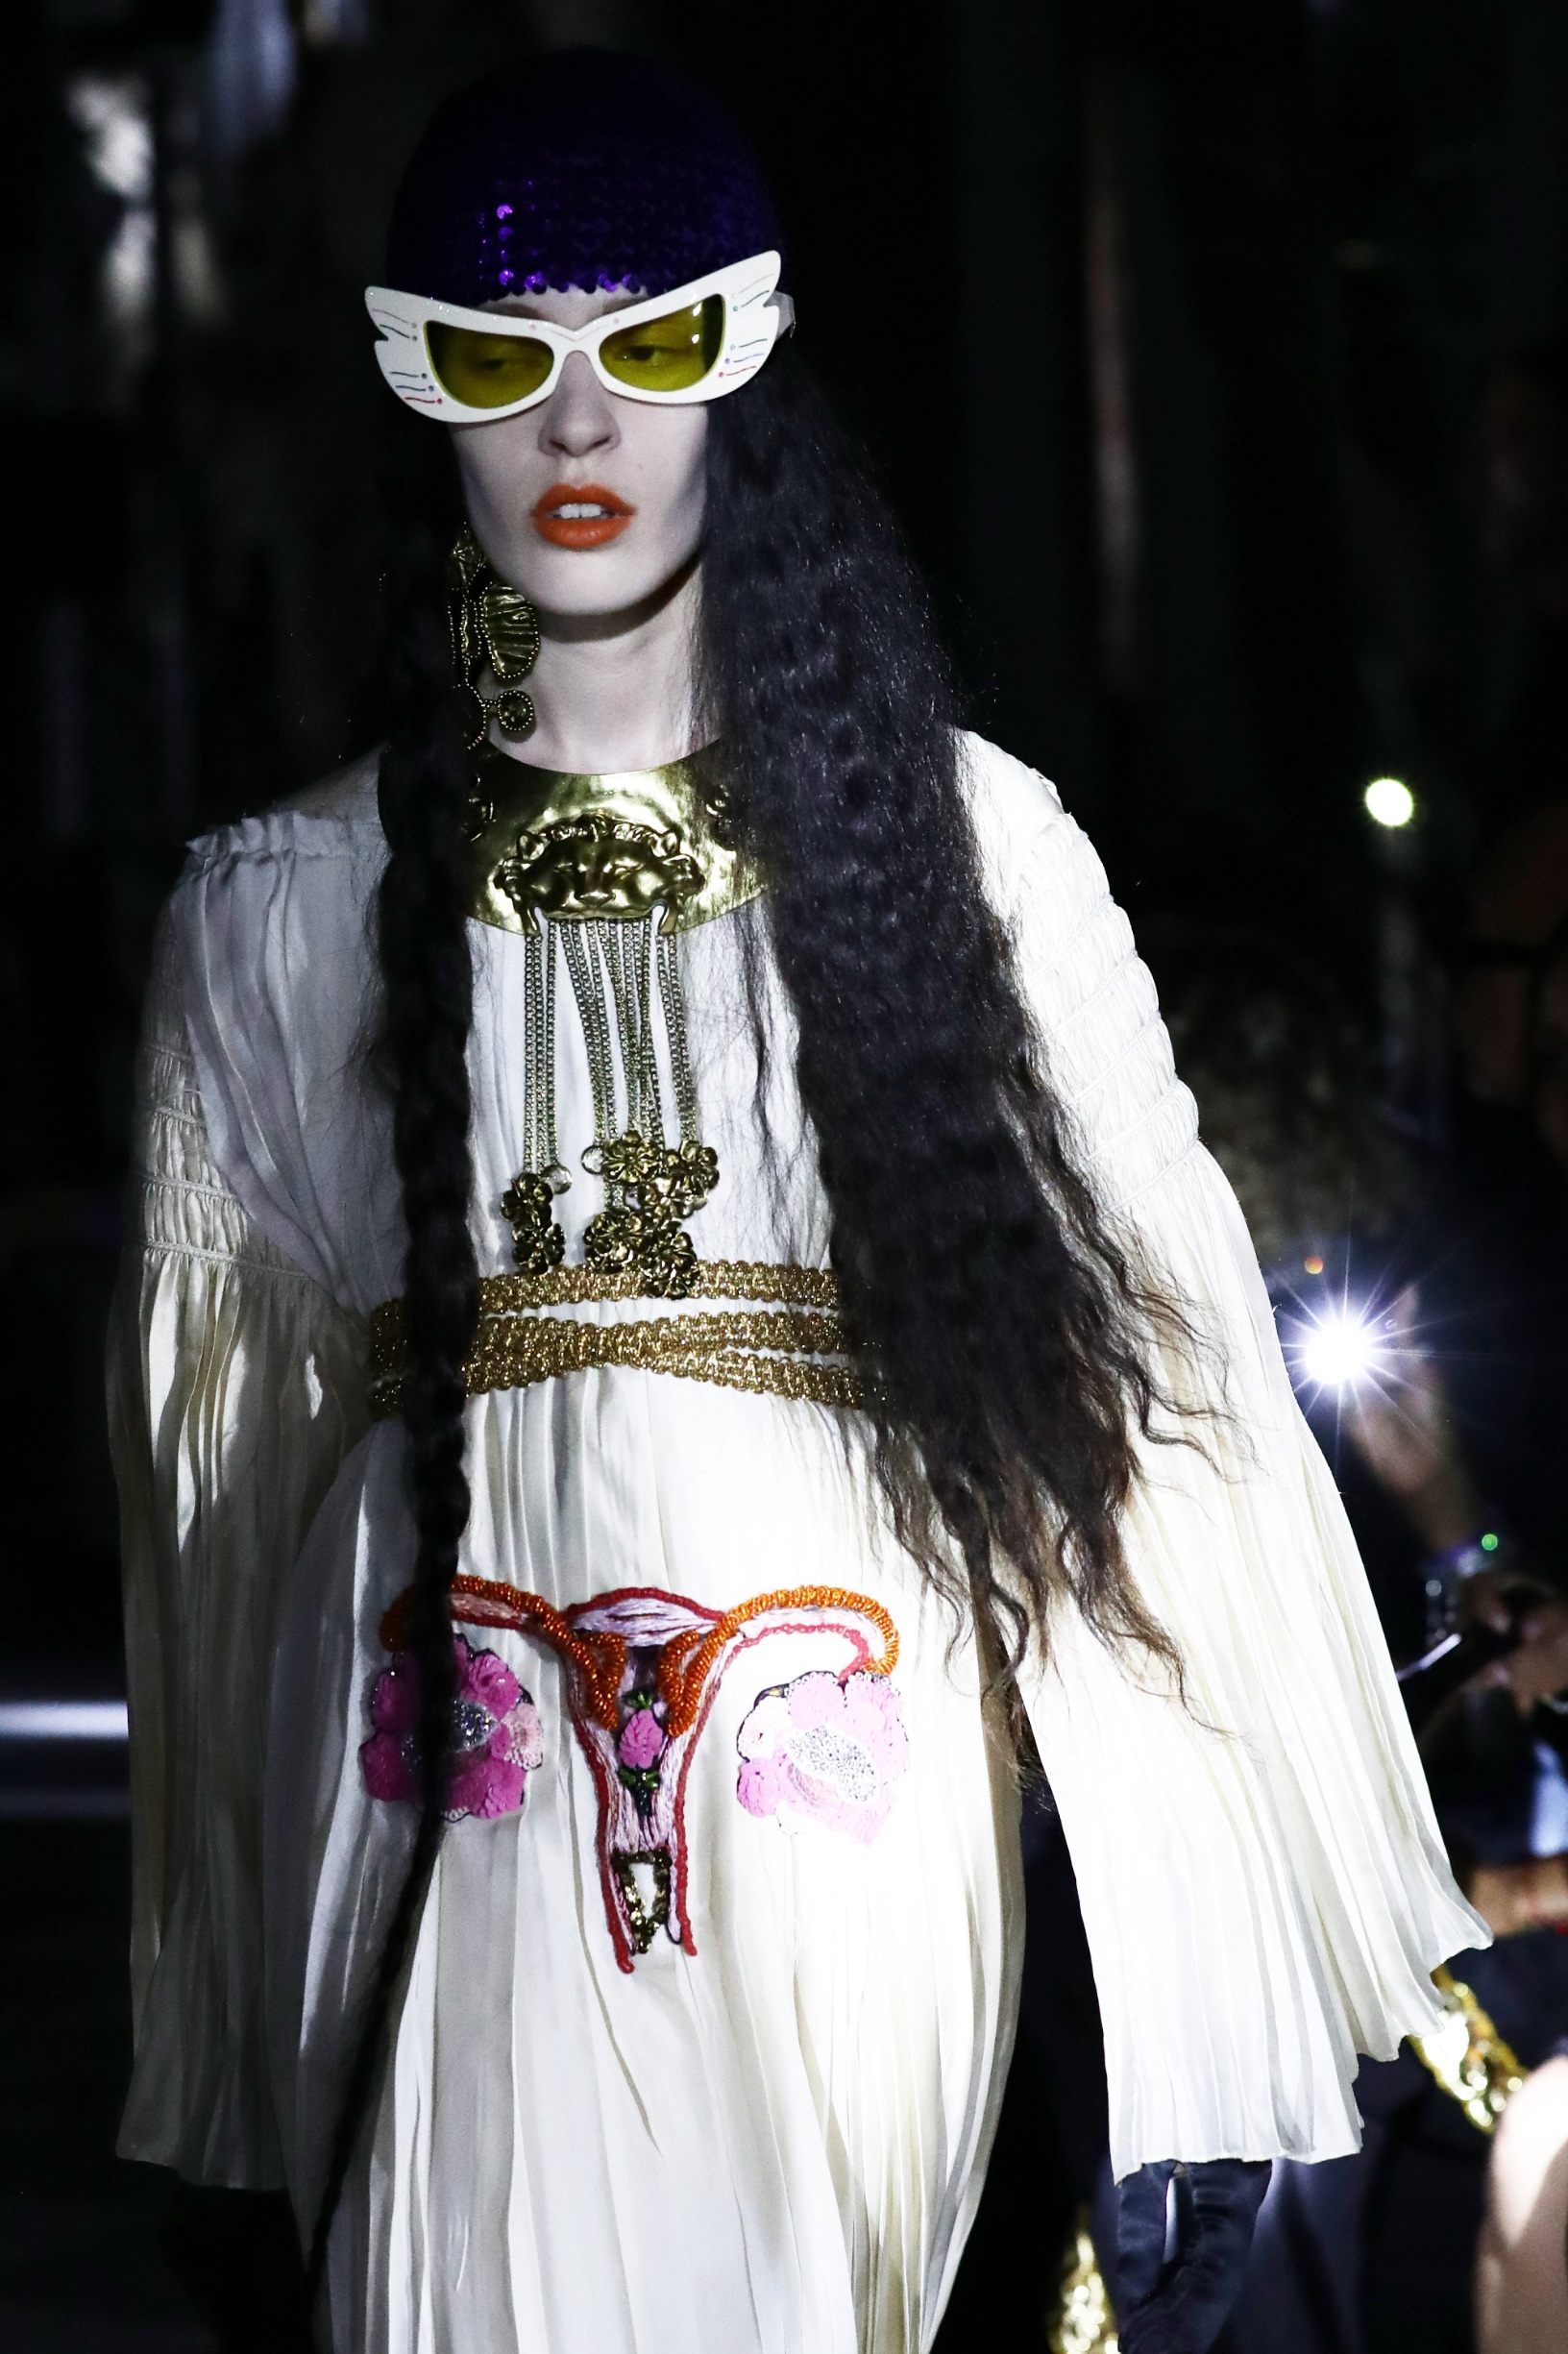 ROME, ITALY - MAY 28: A model walks the runway at the Gucci Cruise 2020 on at Musei Capitolini on May 28, 2019 in Rome, Italy. (Photo by Vittorio Zunino Celotto/Getty Images for Gucci)